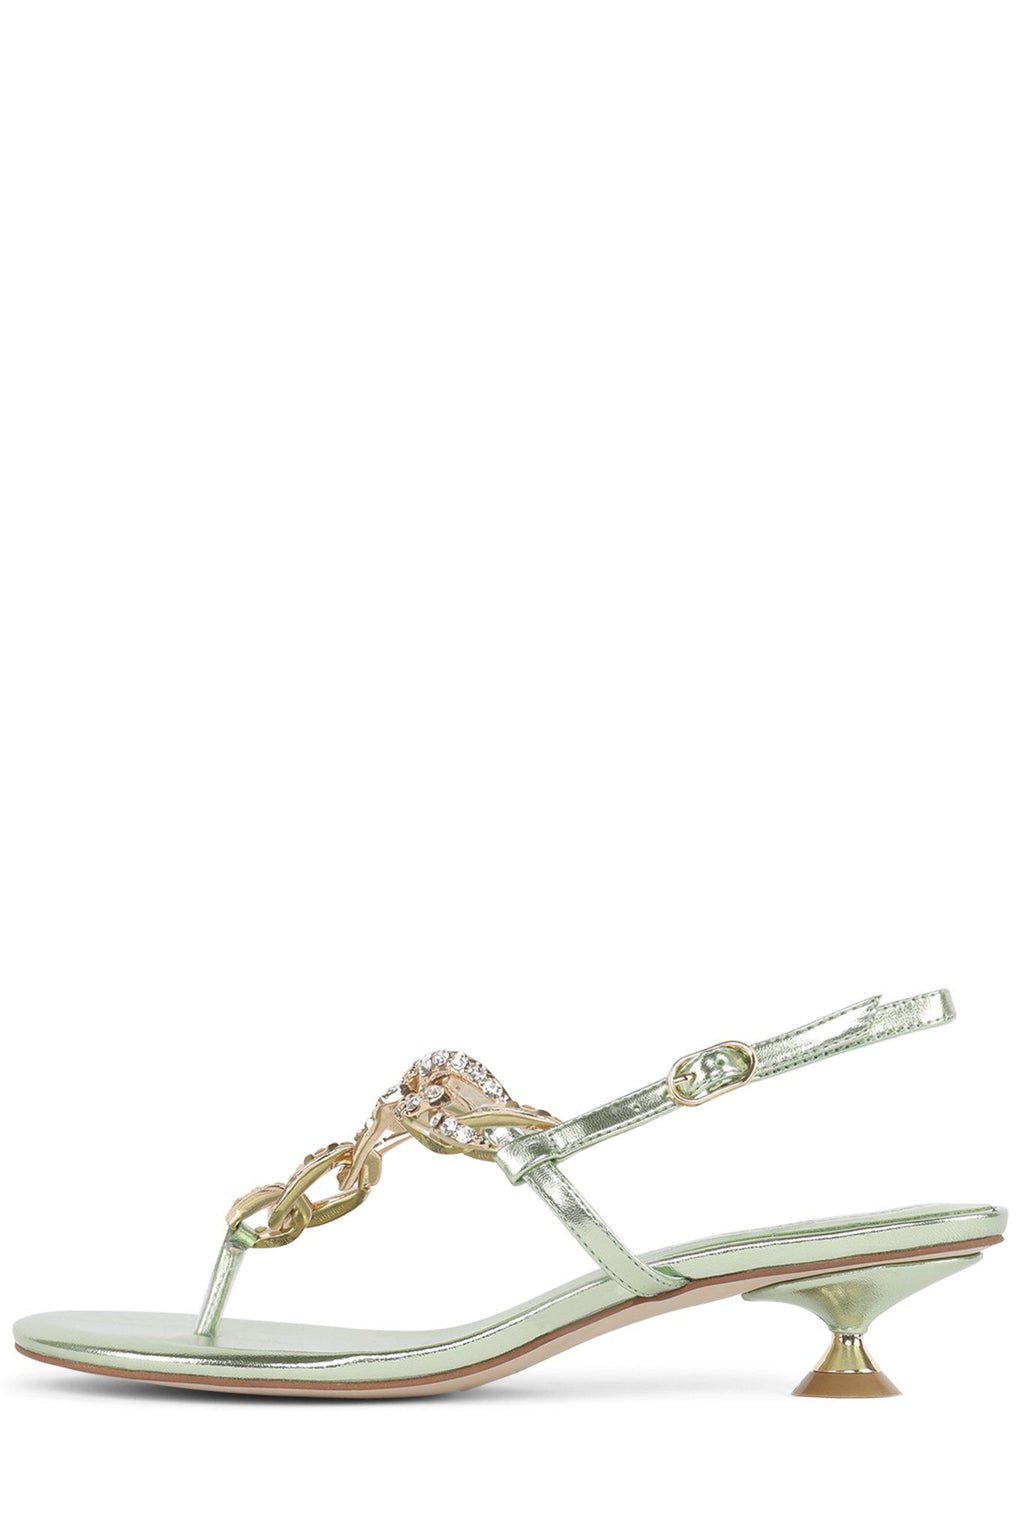 CHAIN-HI Heeled Sandal STRATEGY Mint Metallic 6